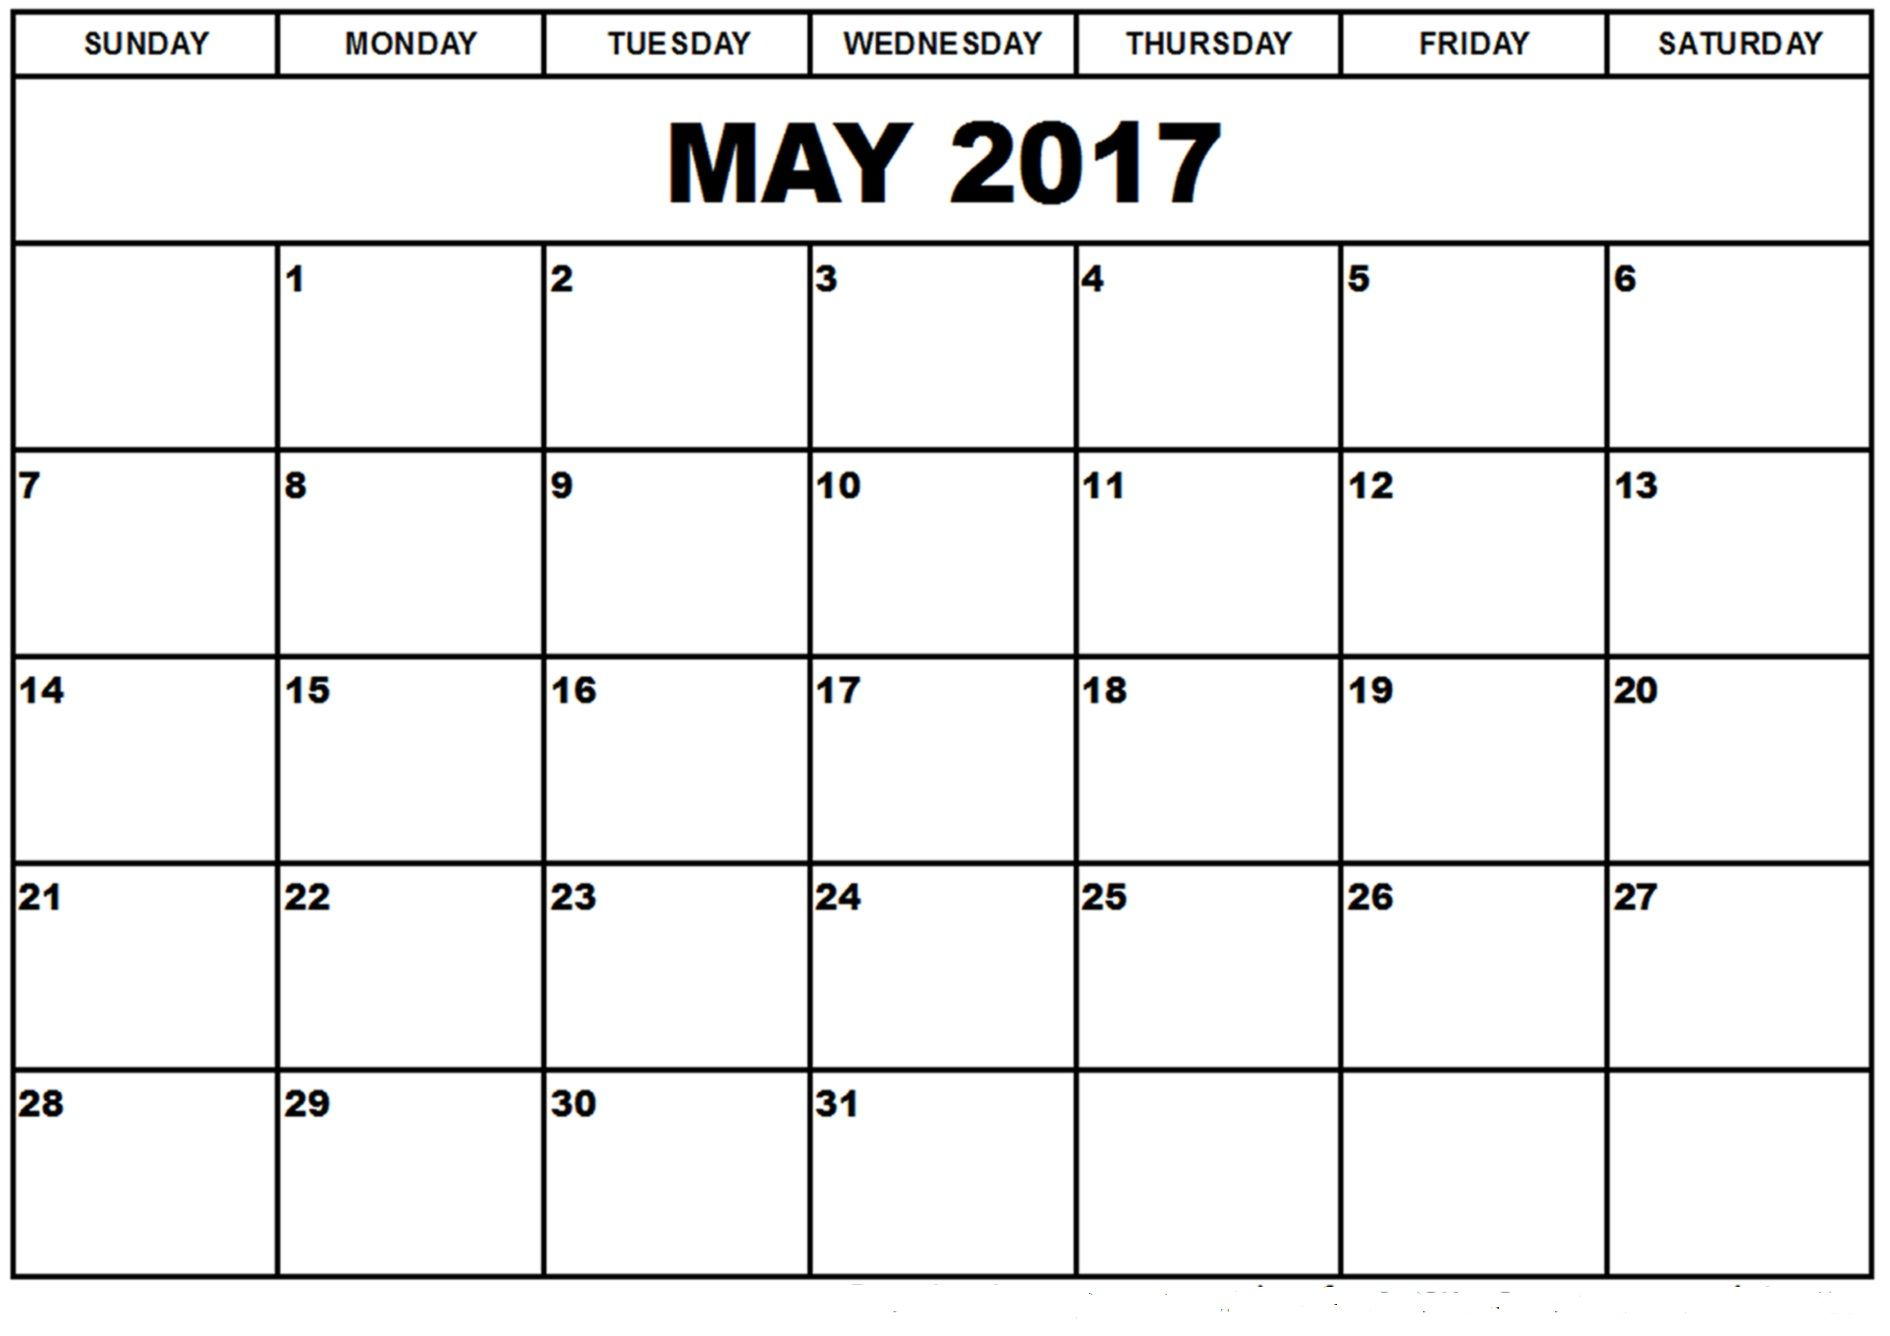 Calendar Planner For May : May printable calendar